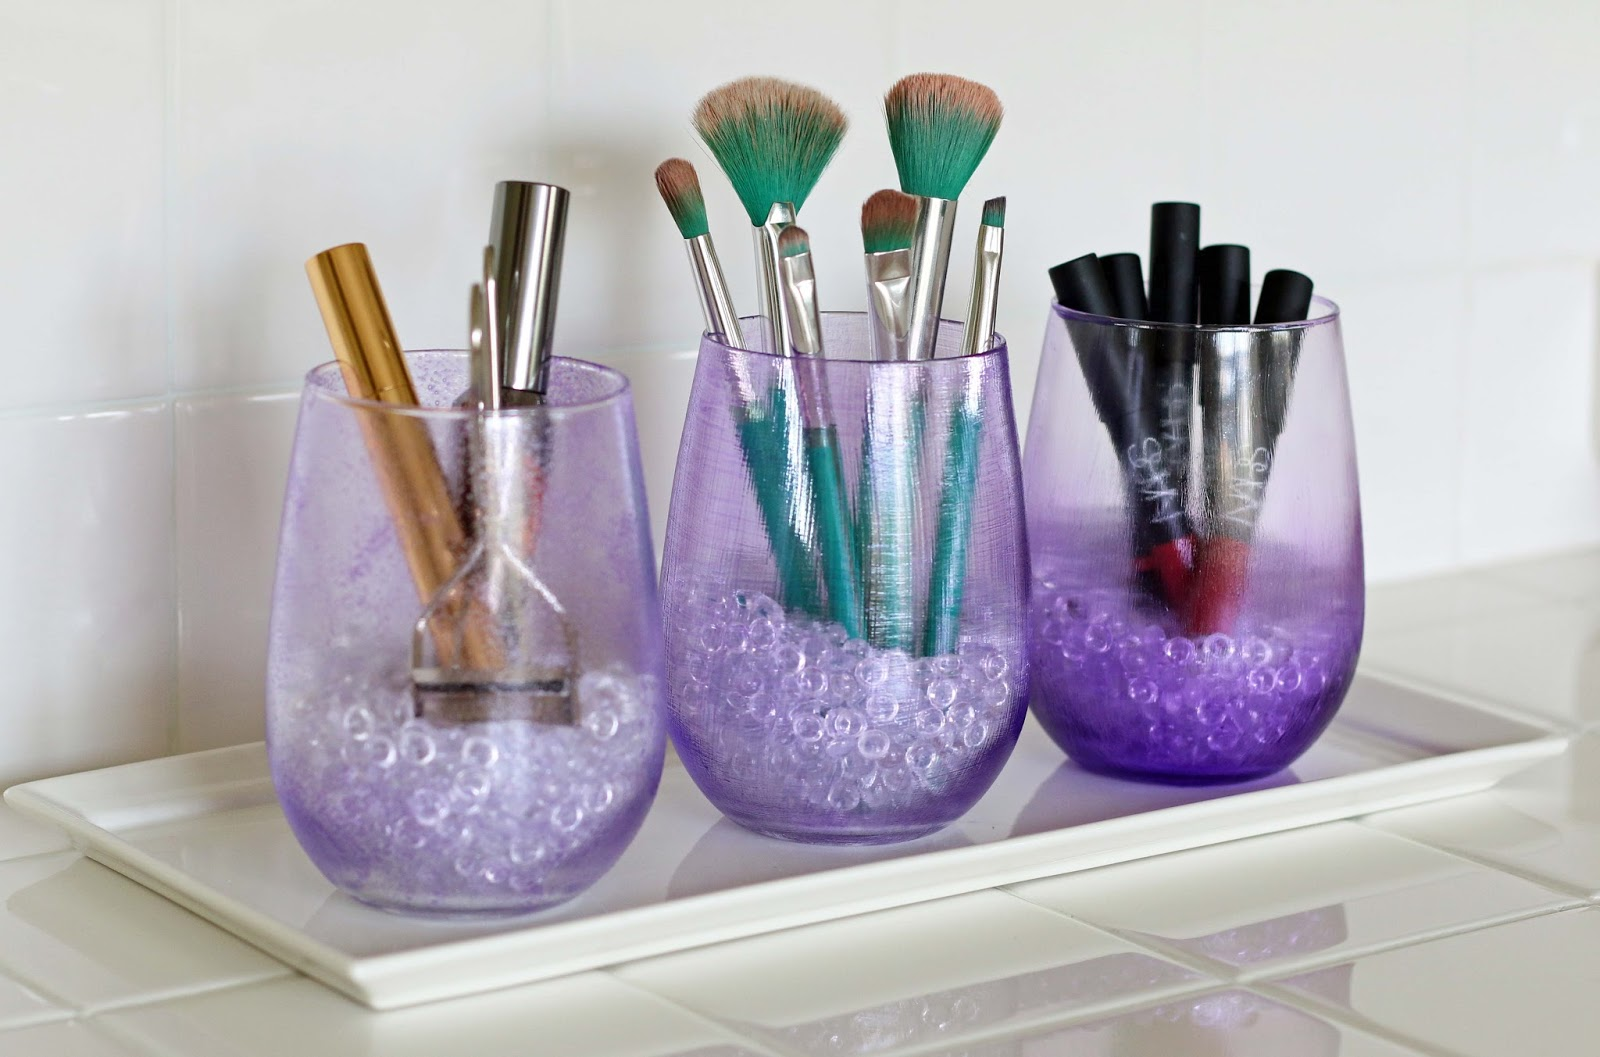 Three Purple Mod Podge glasses are used for makeup storage and organizing.